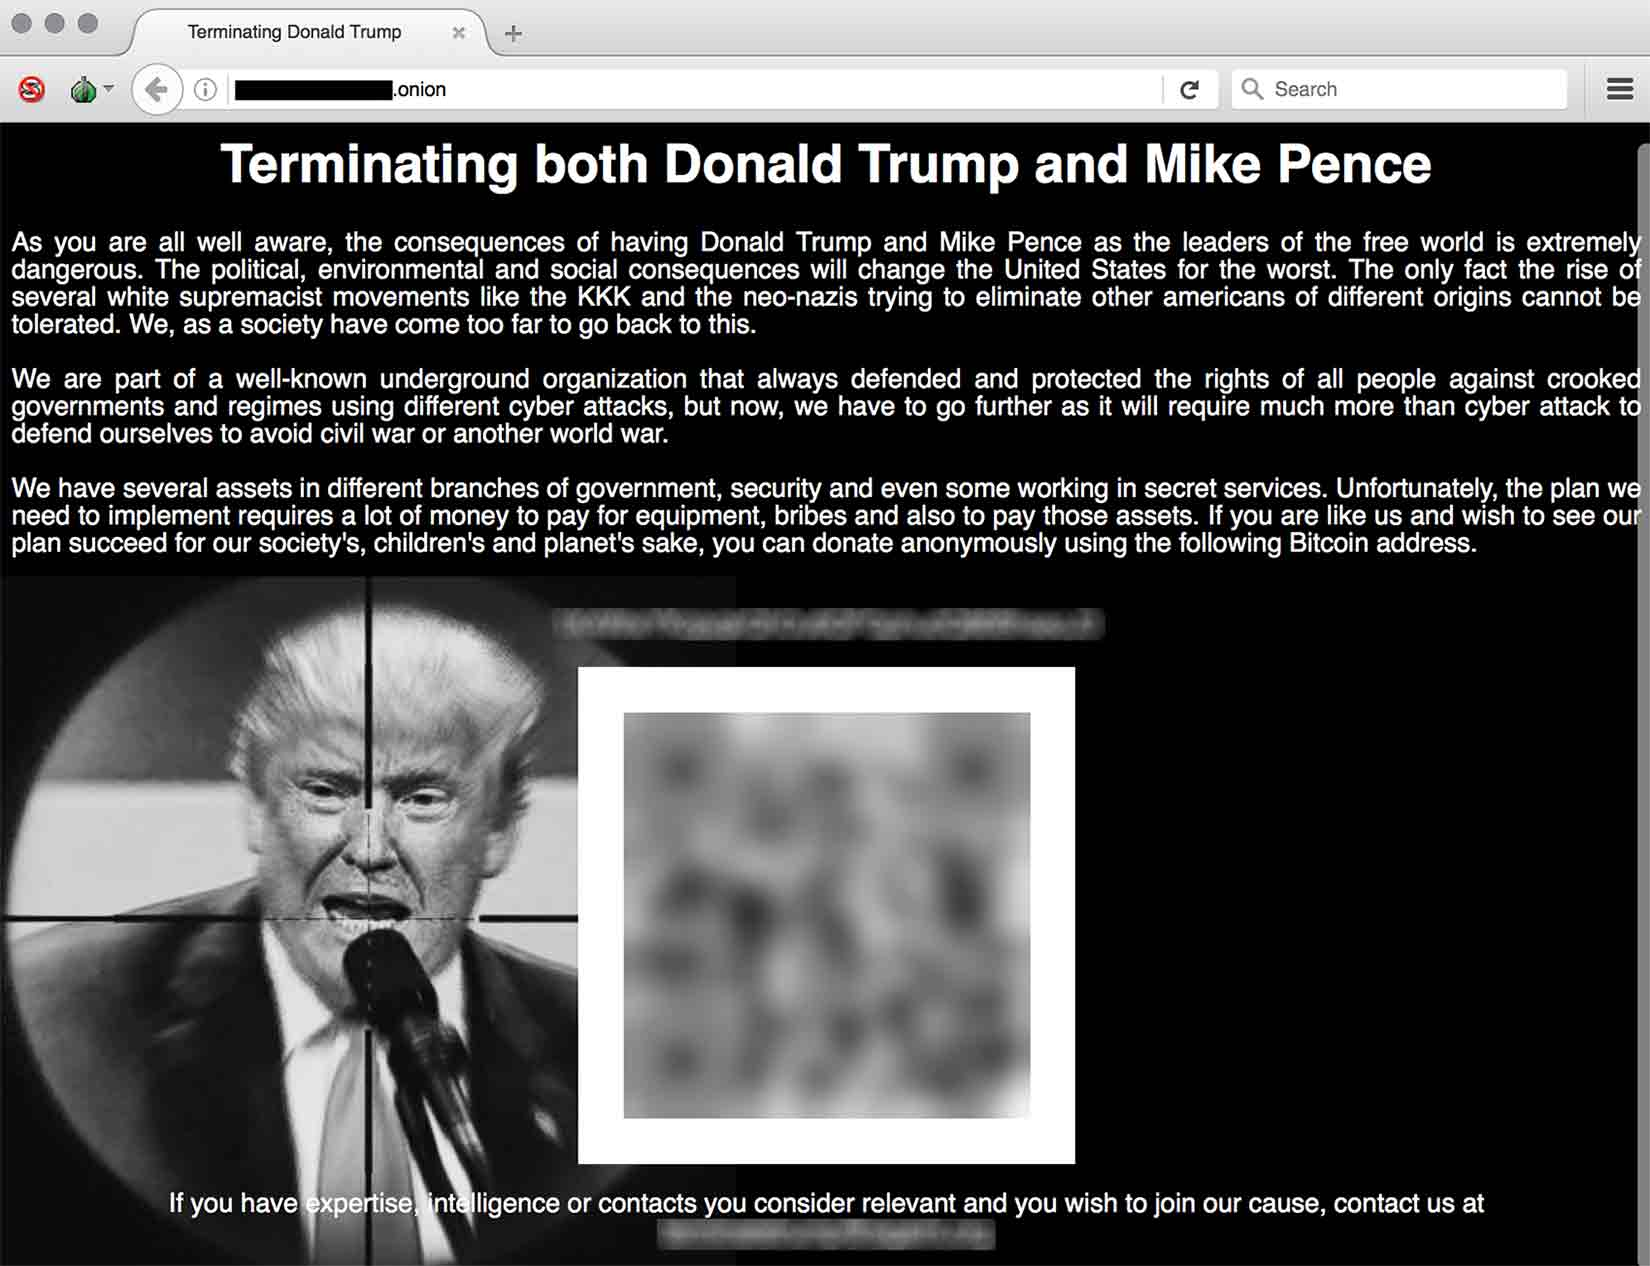 Darknet Website Takes Donations for Trump Assassination